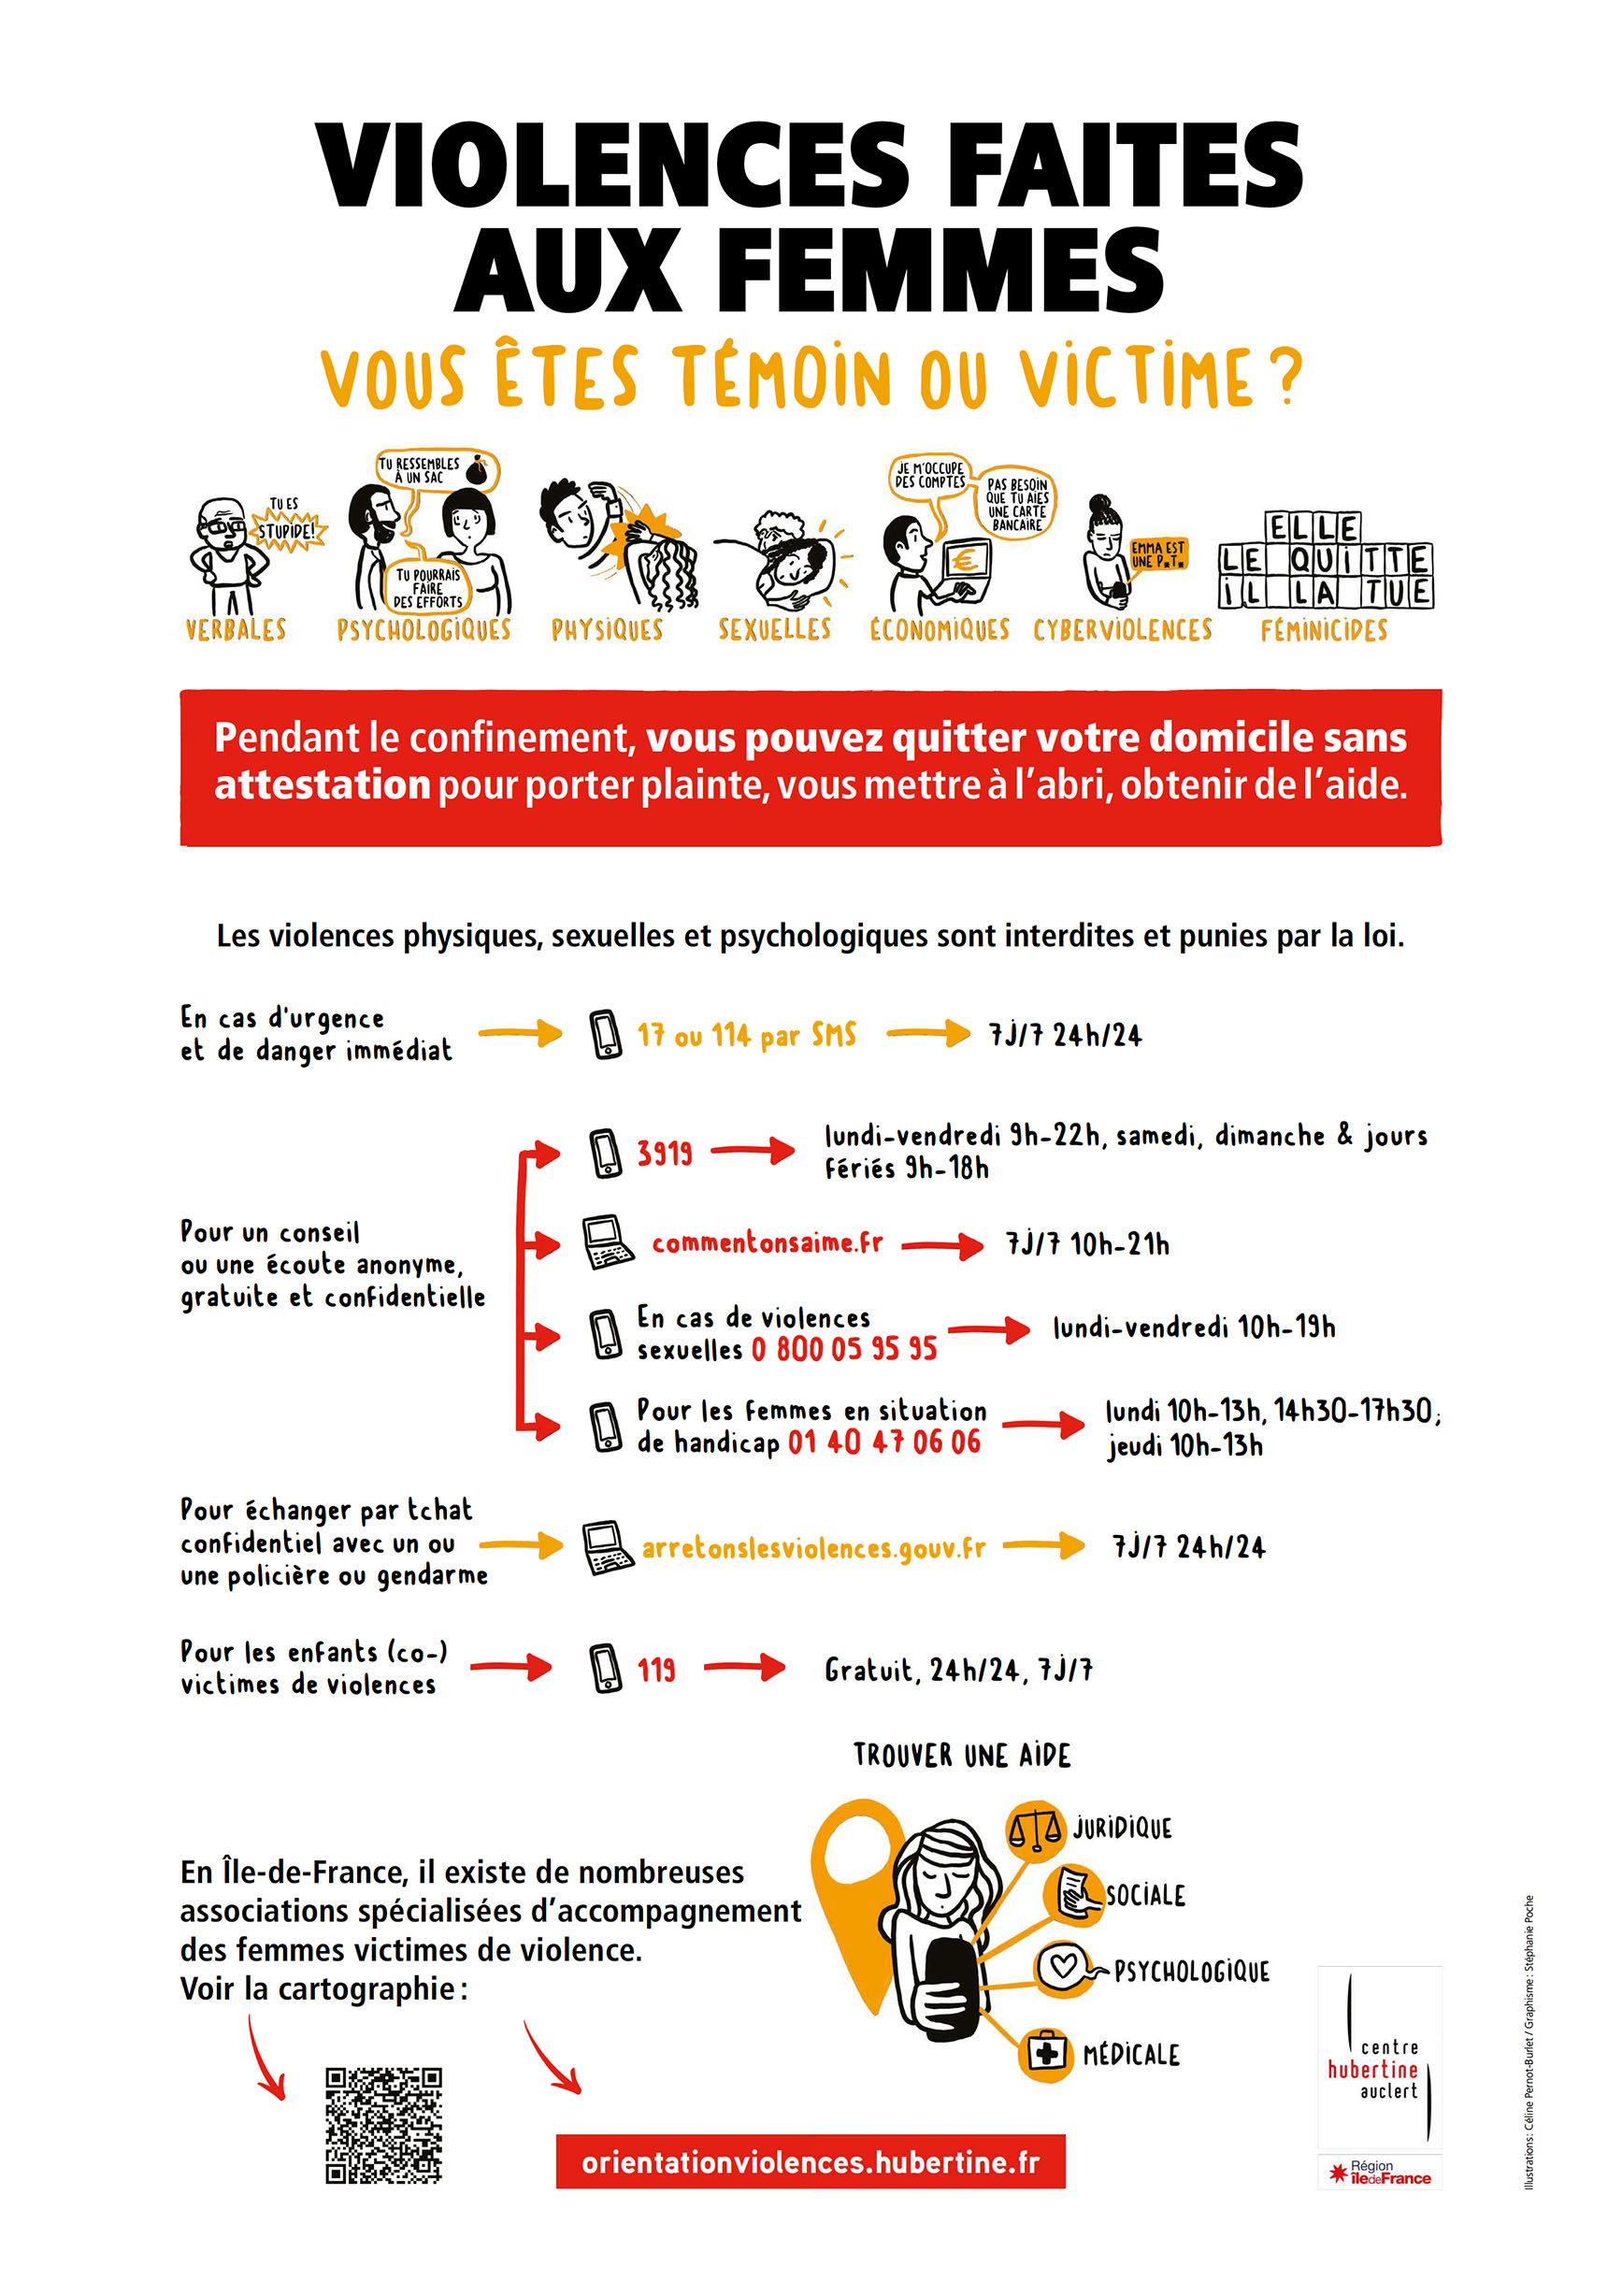 Affiche contre les violences